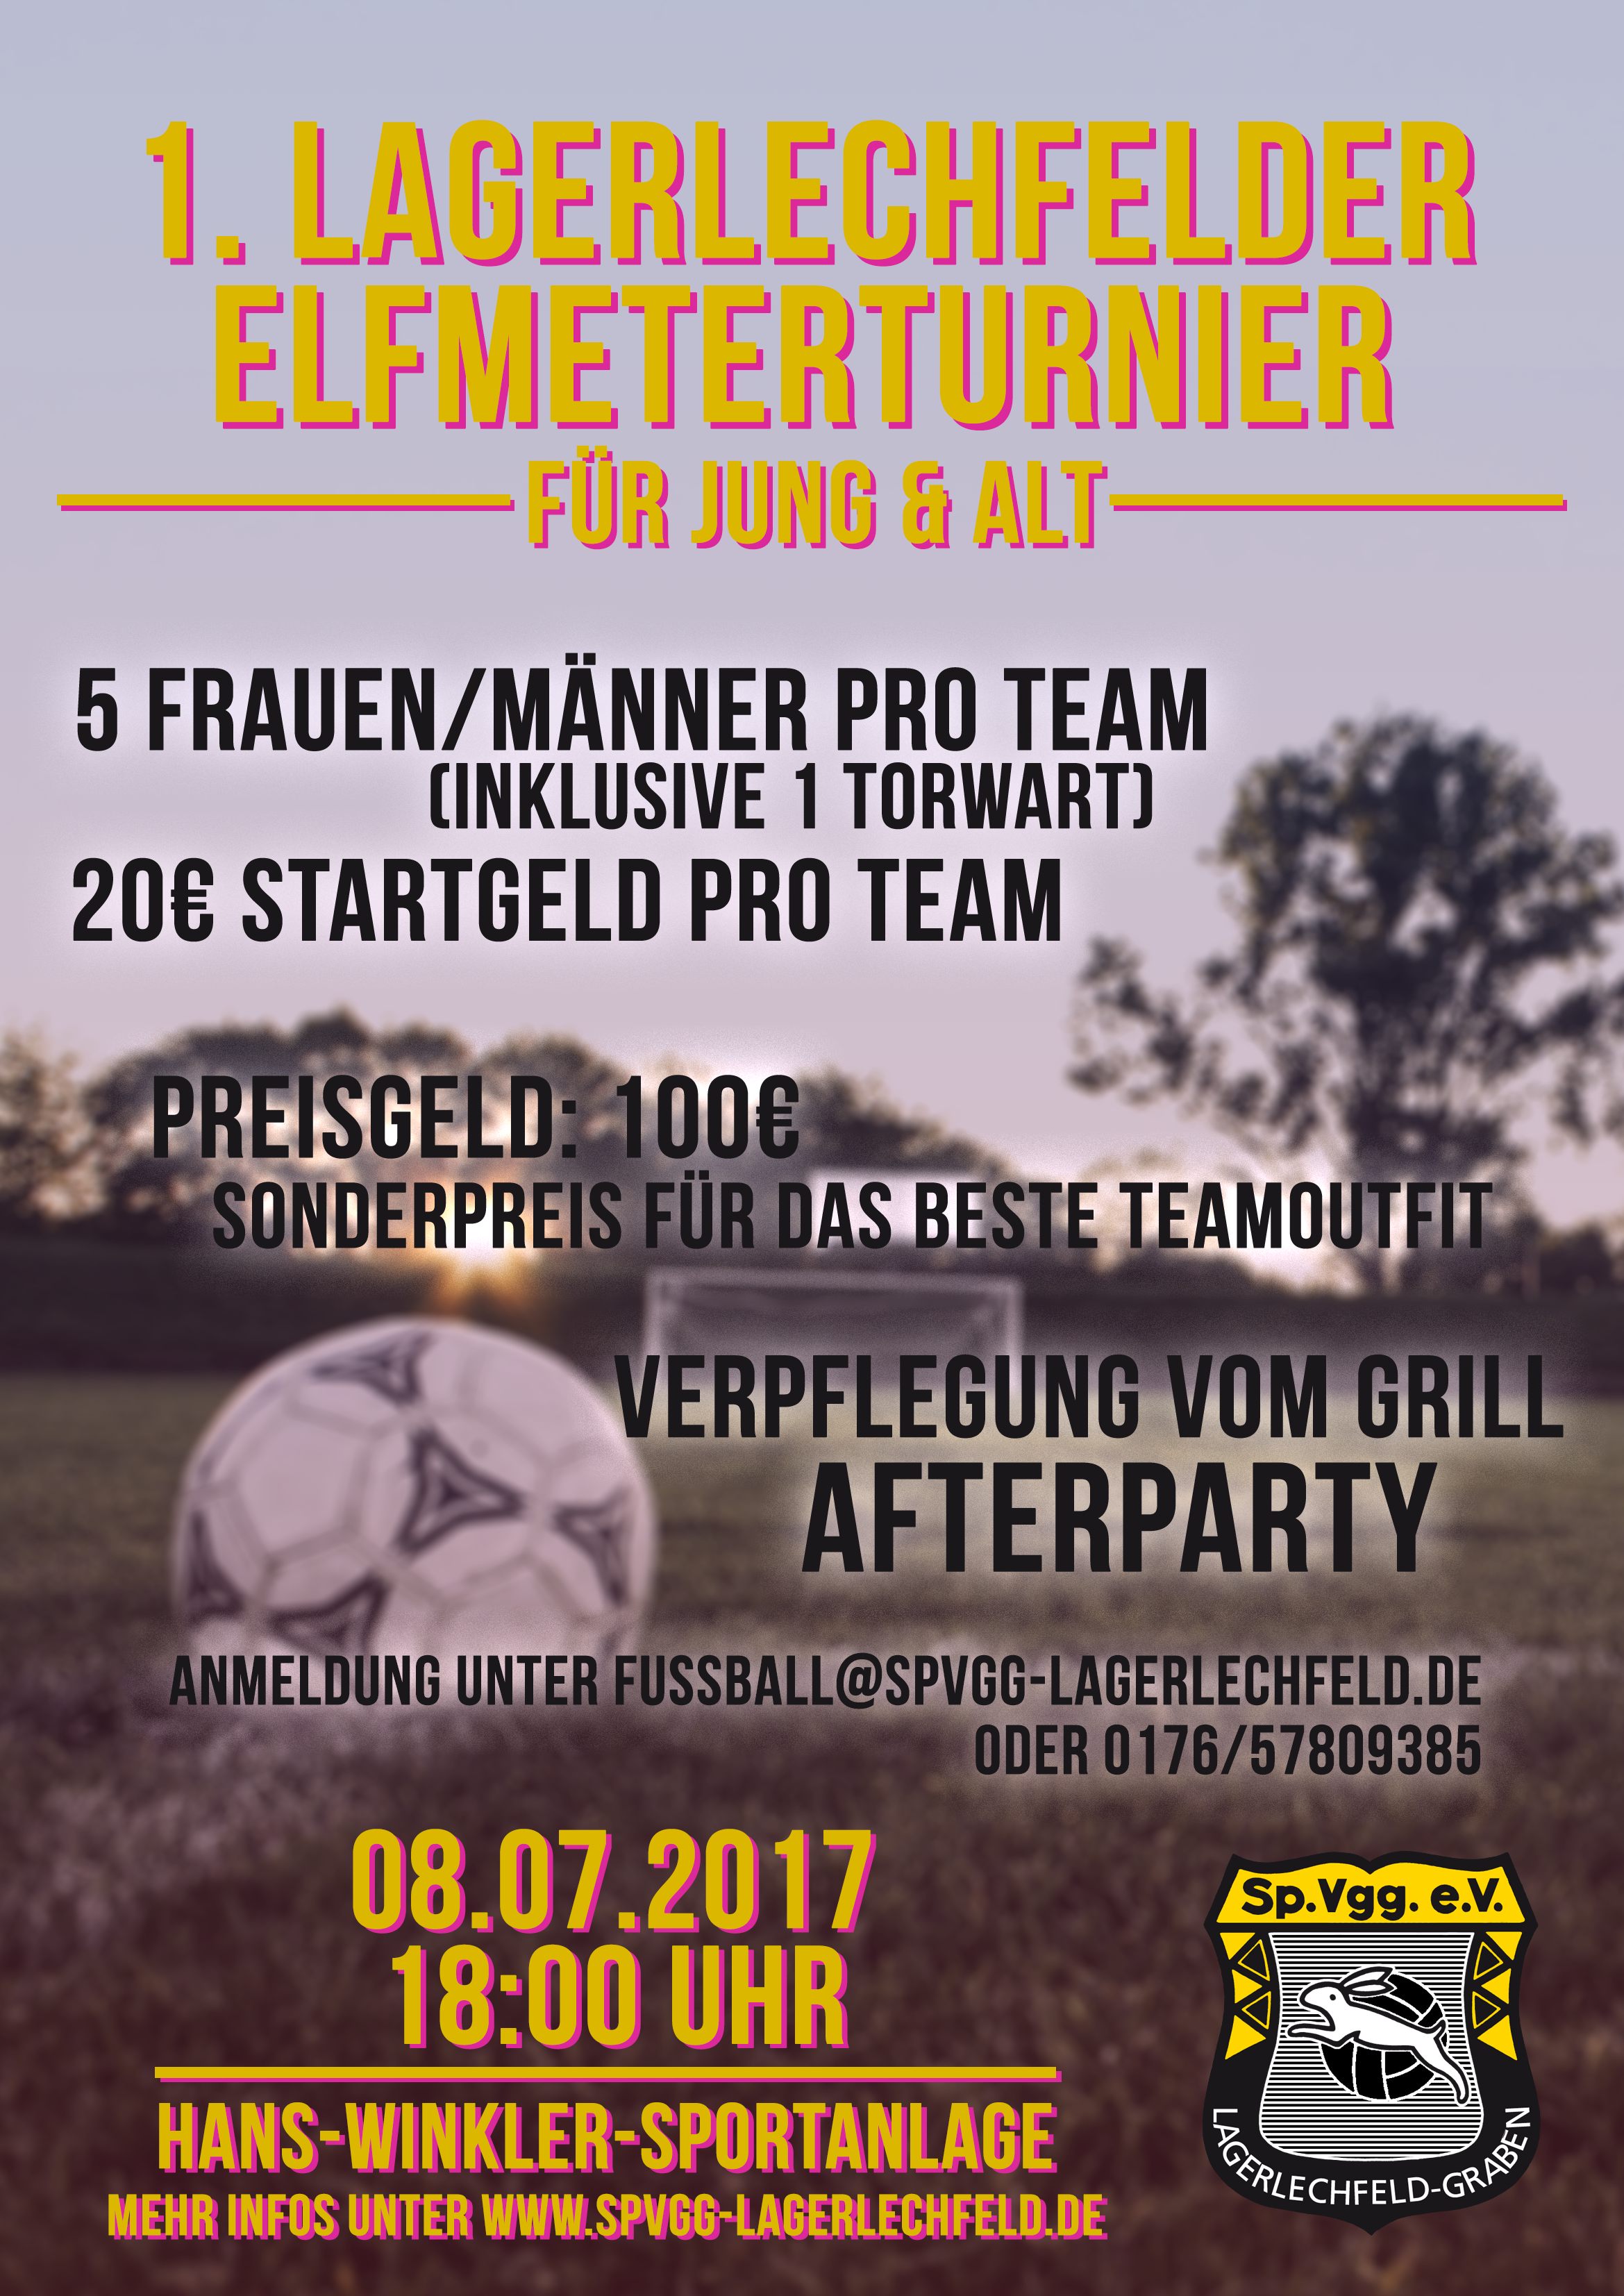 FLYER-Elfmeterturnier